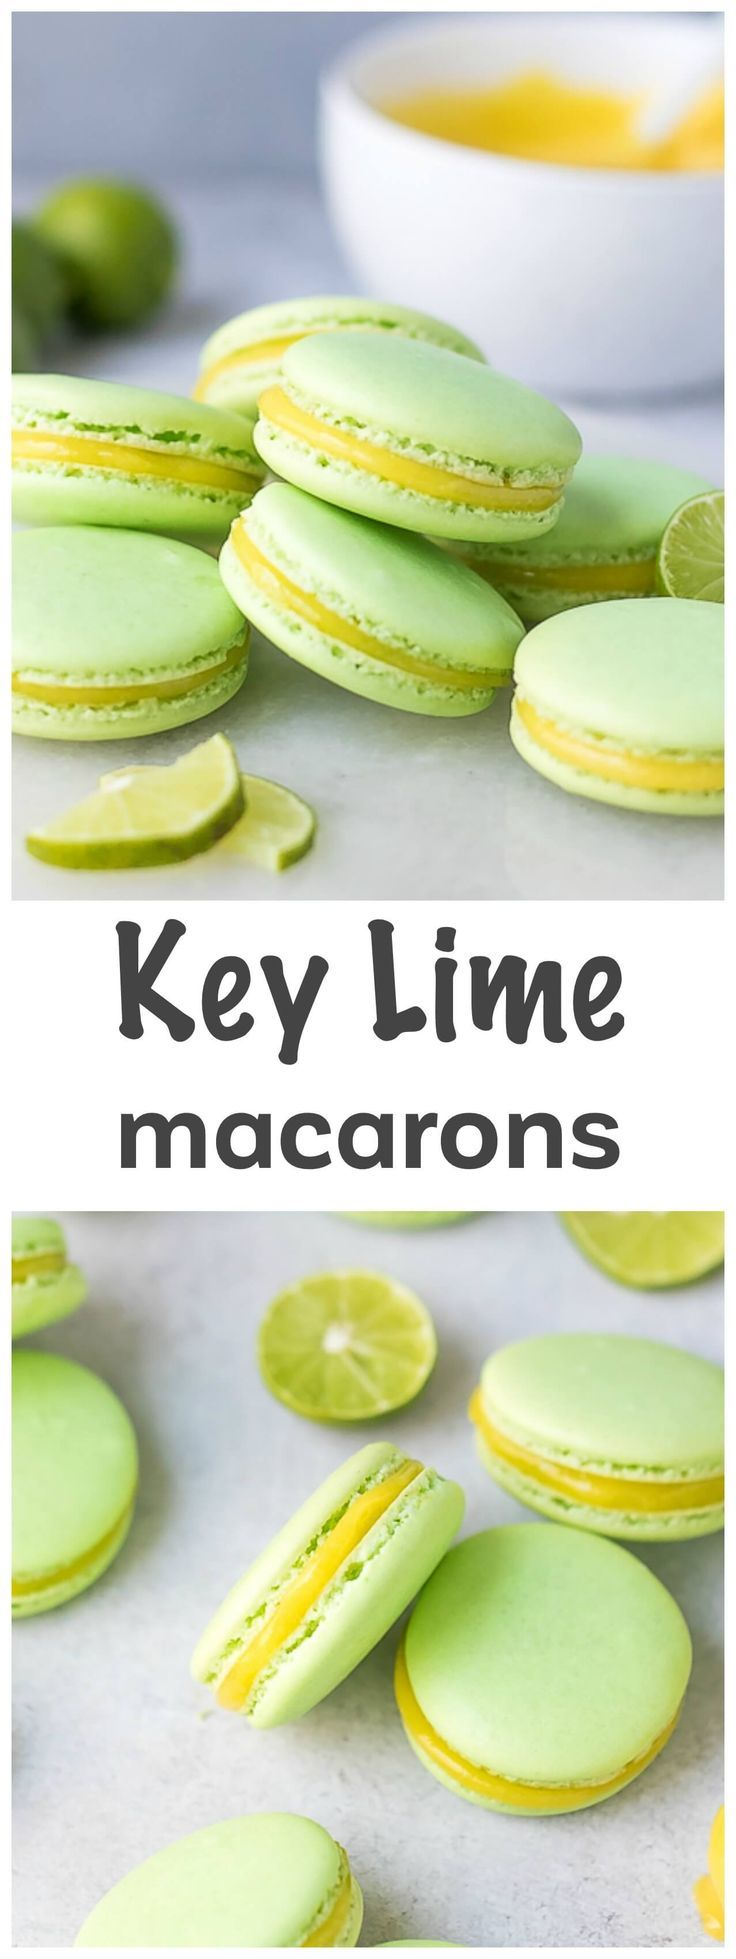 Lime Macarons Recipe - tangy and sweet French macarons, that melt in your mouth, filled with lime curd and loaded with fresh flavor. via @cookinglsl